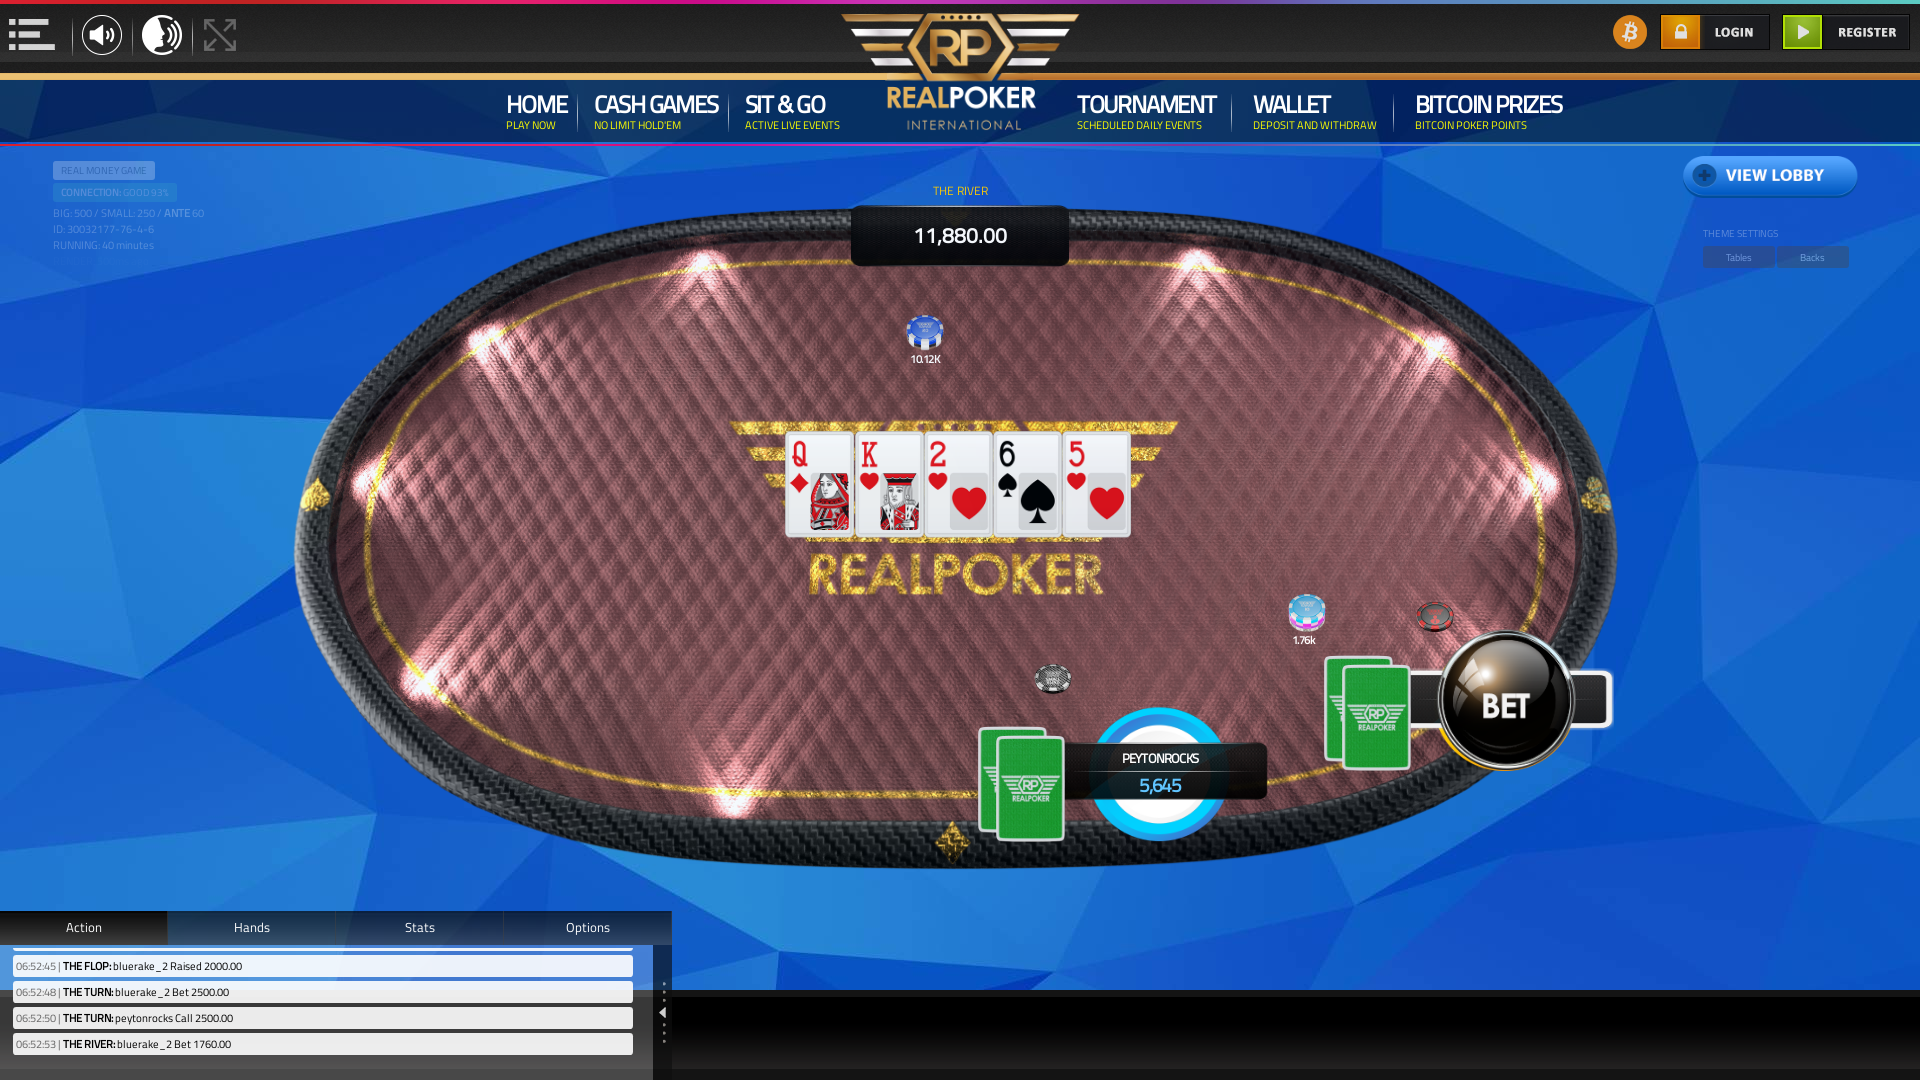 The 76th hand dealt between peytonrocks, bluerake_2,